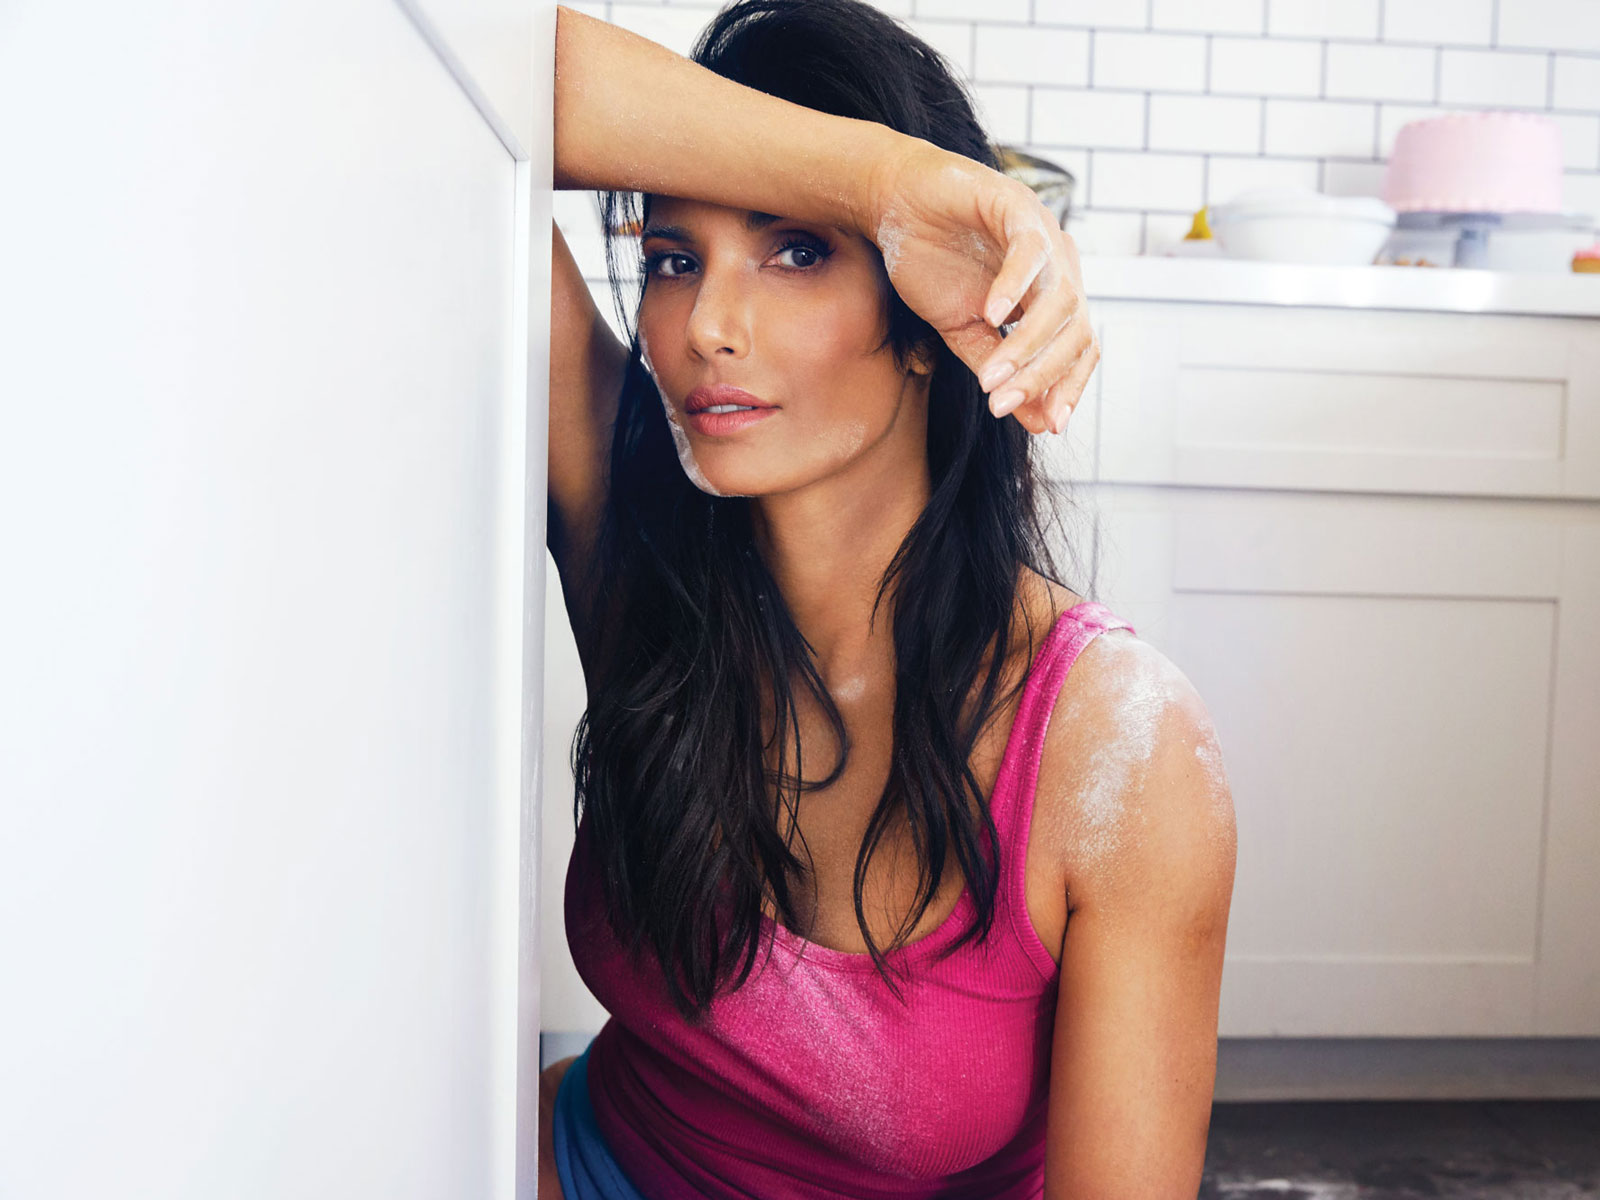 How Padma Lakshmi Detoxes After Filming 'Top Chef'